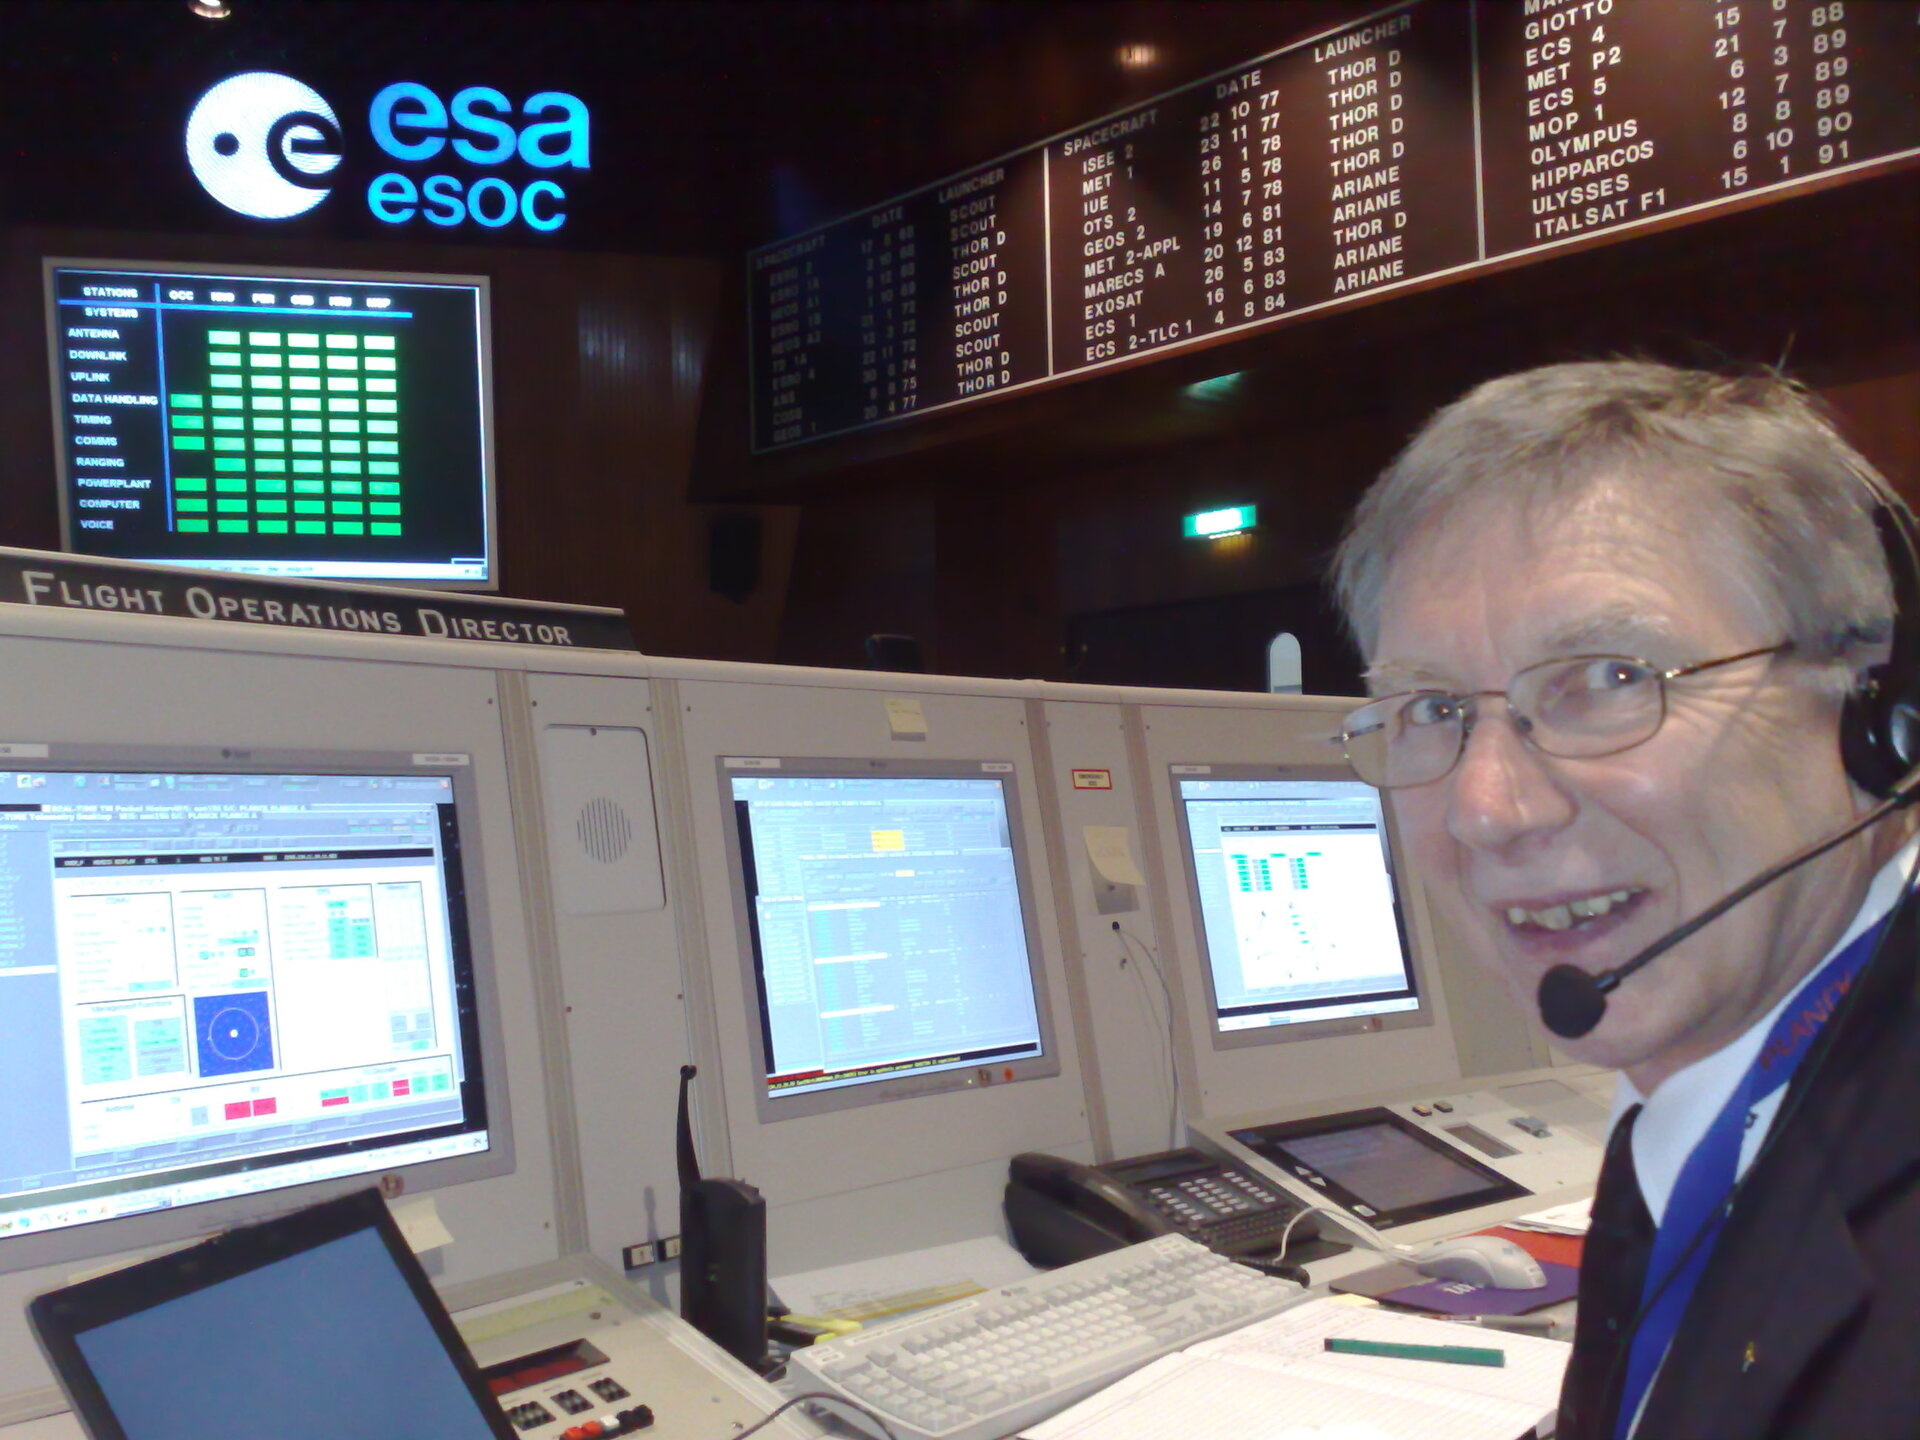 Herschel-Planck Flight Director J. Dodsworth on console